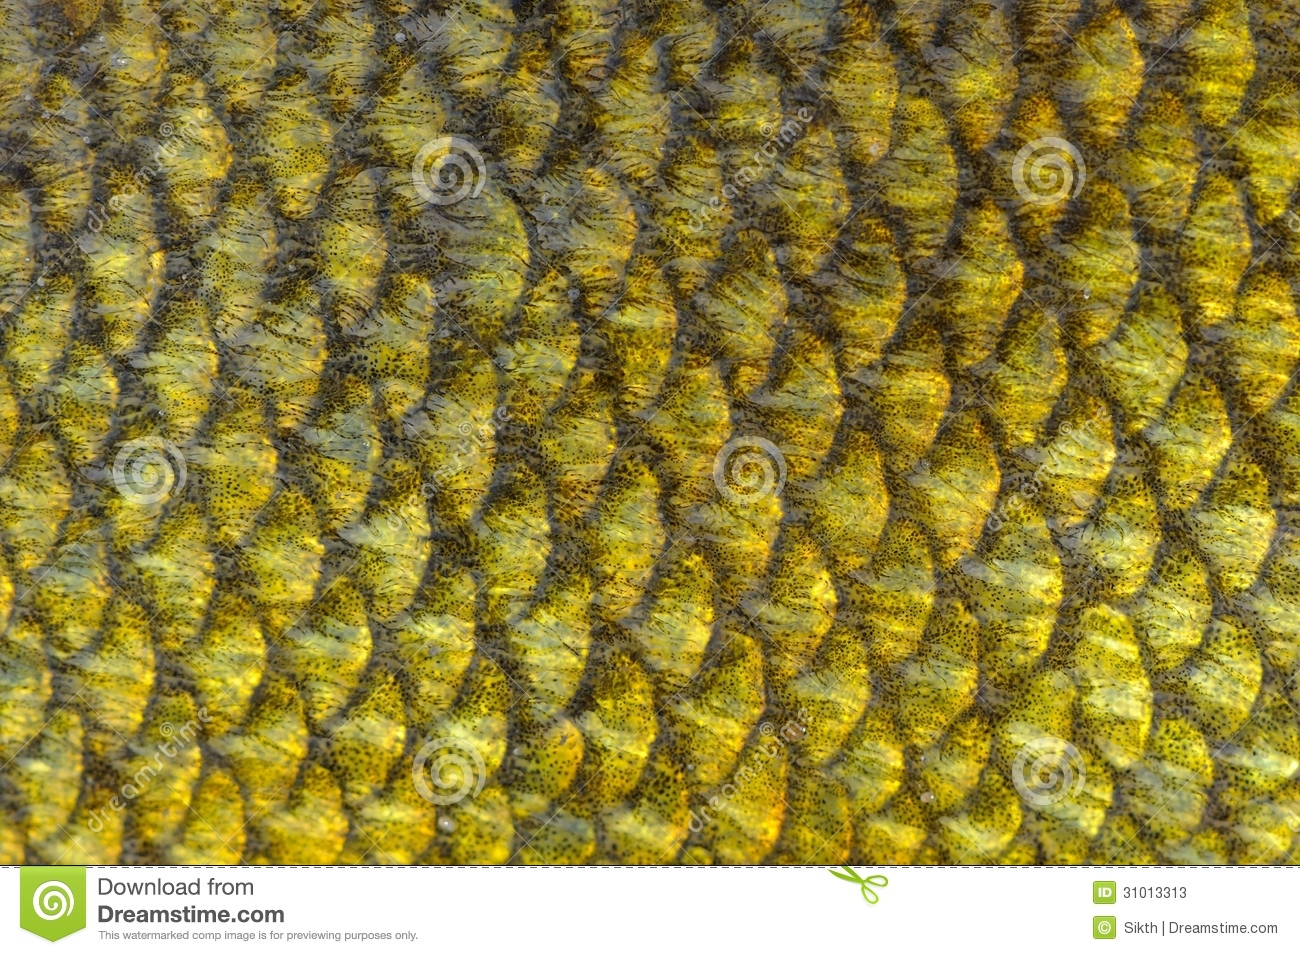 Real tench fish scales background stock photos image for Do all fish have scales